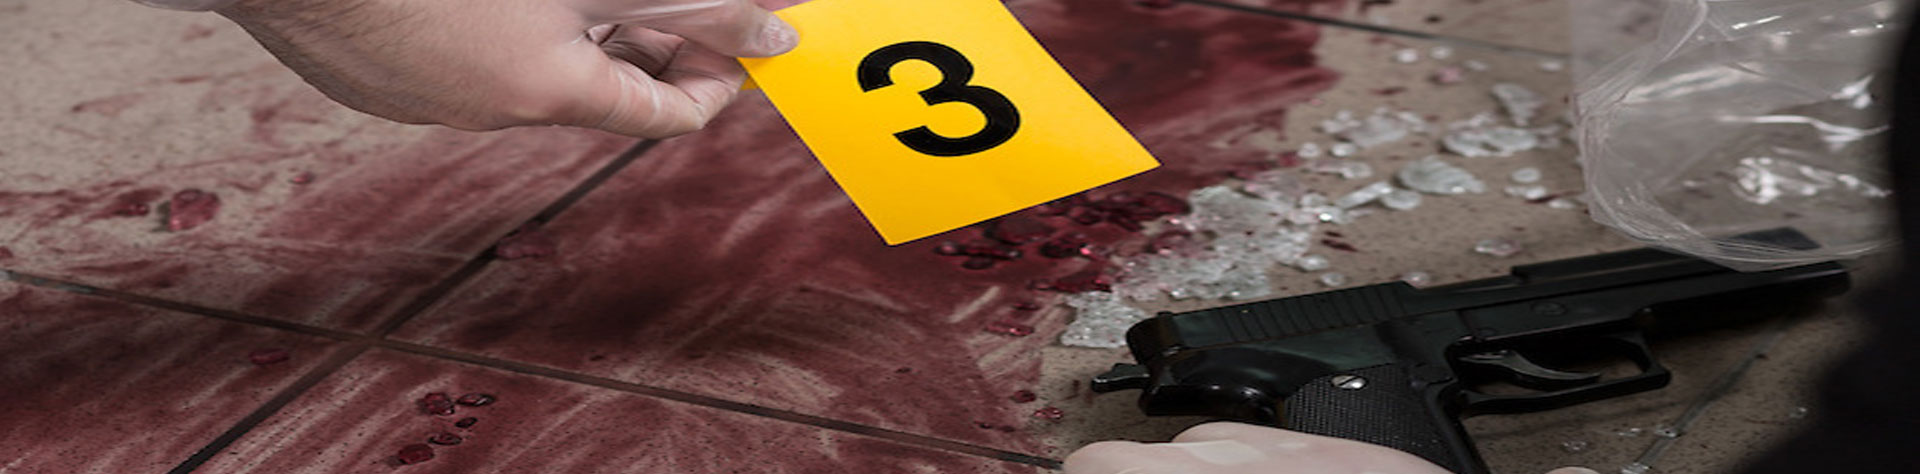 DMACC CSI Certificate Program - crime scene photo